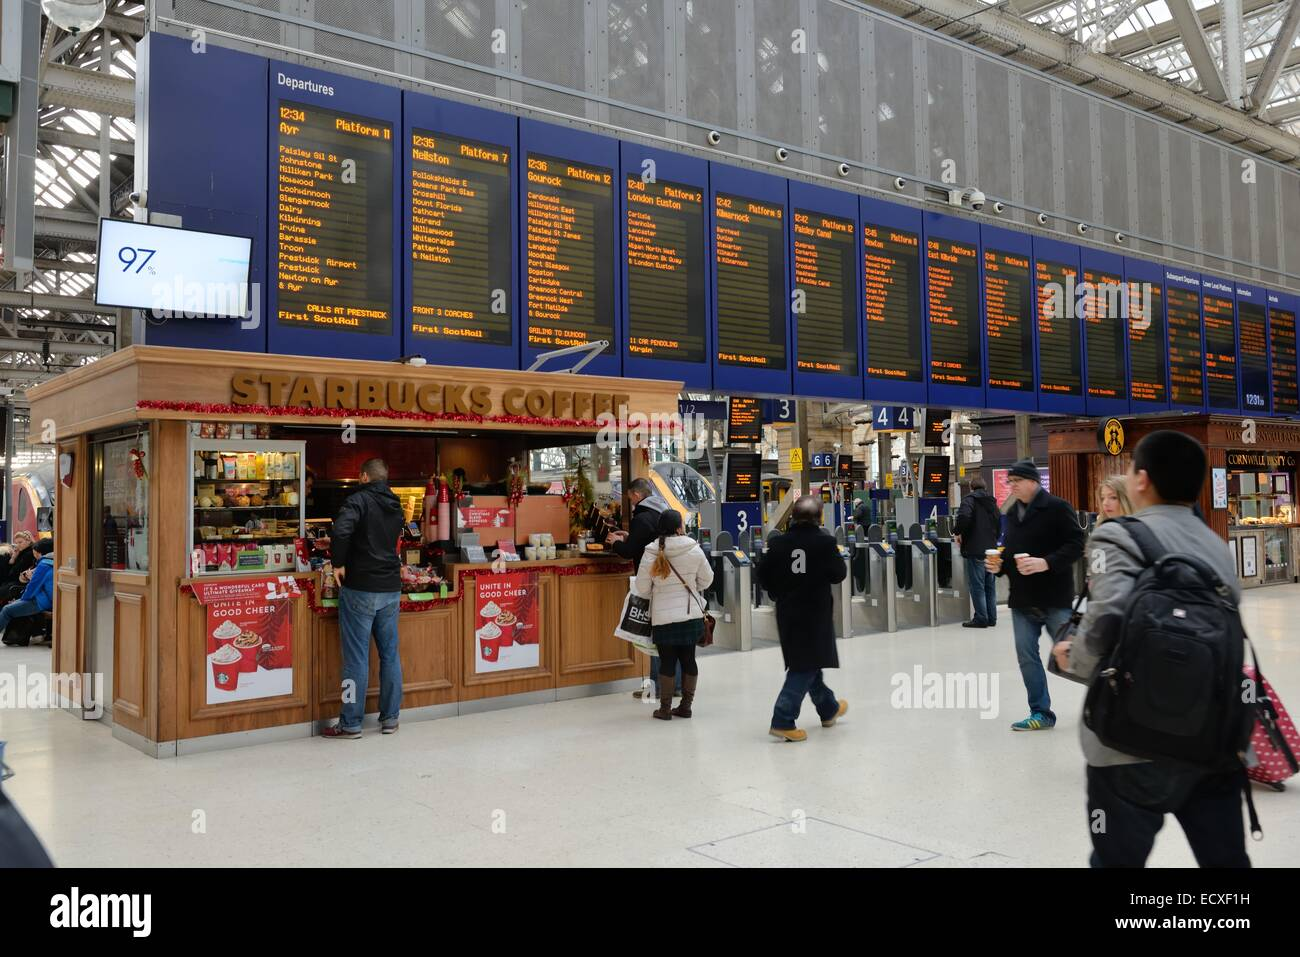 A Starbucks kiosk sells coffee to rail commuters at Glasgow Central station - Stock Image